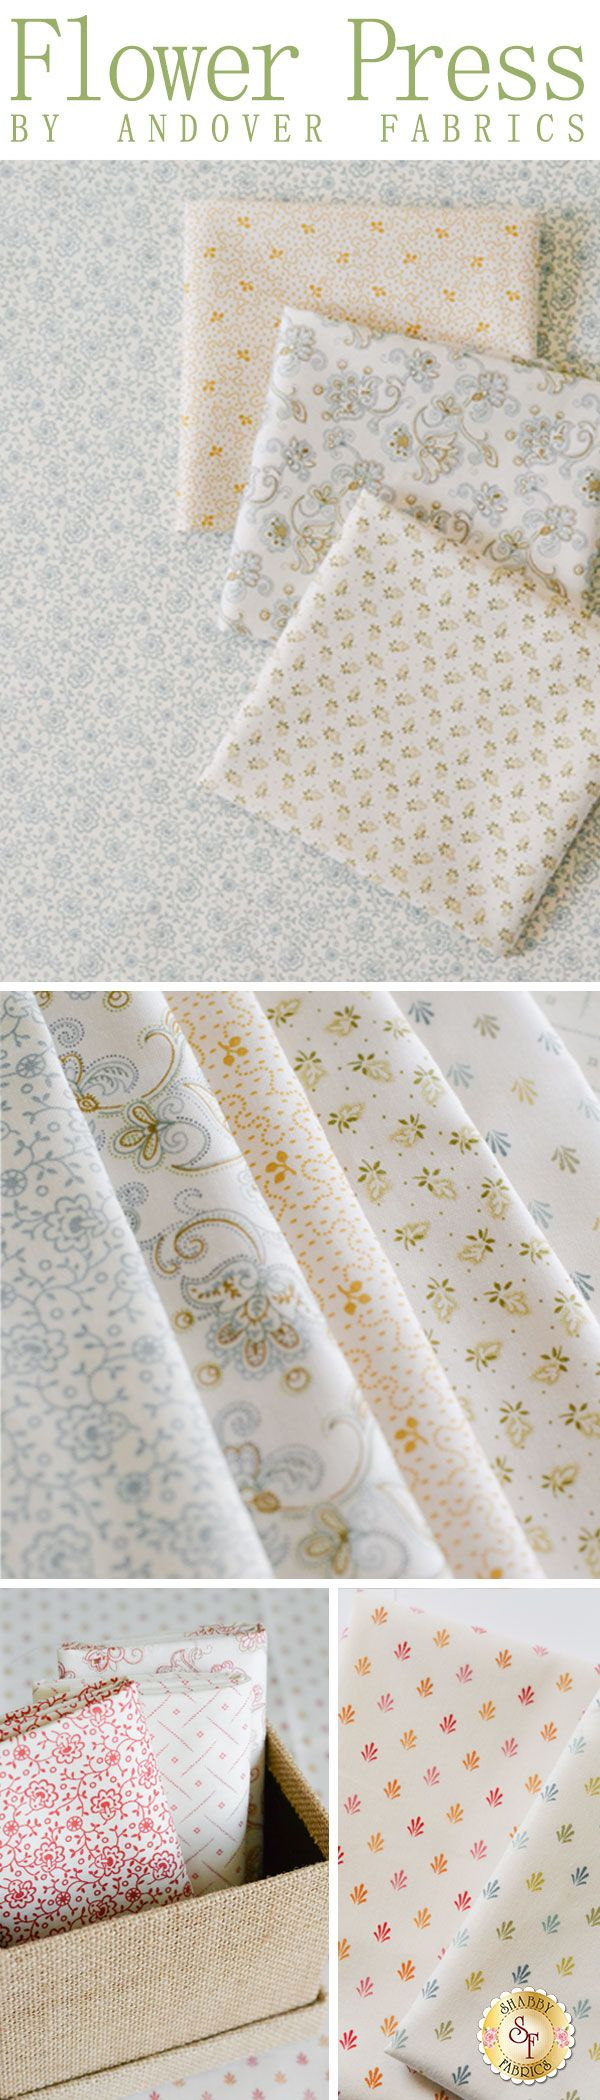 Flower Press is a pretty floral collection from Andover Fabrics by Renee Nanneman available at Shabby Fabrics